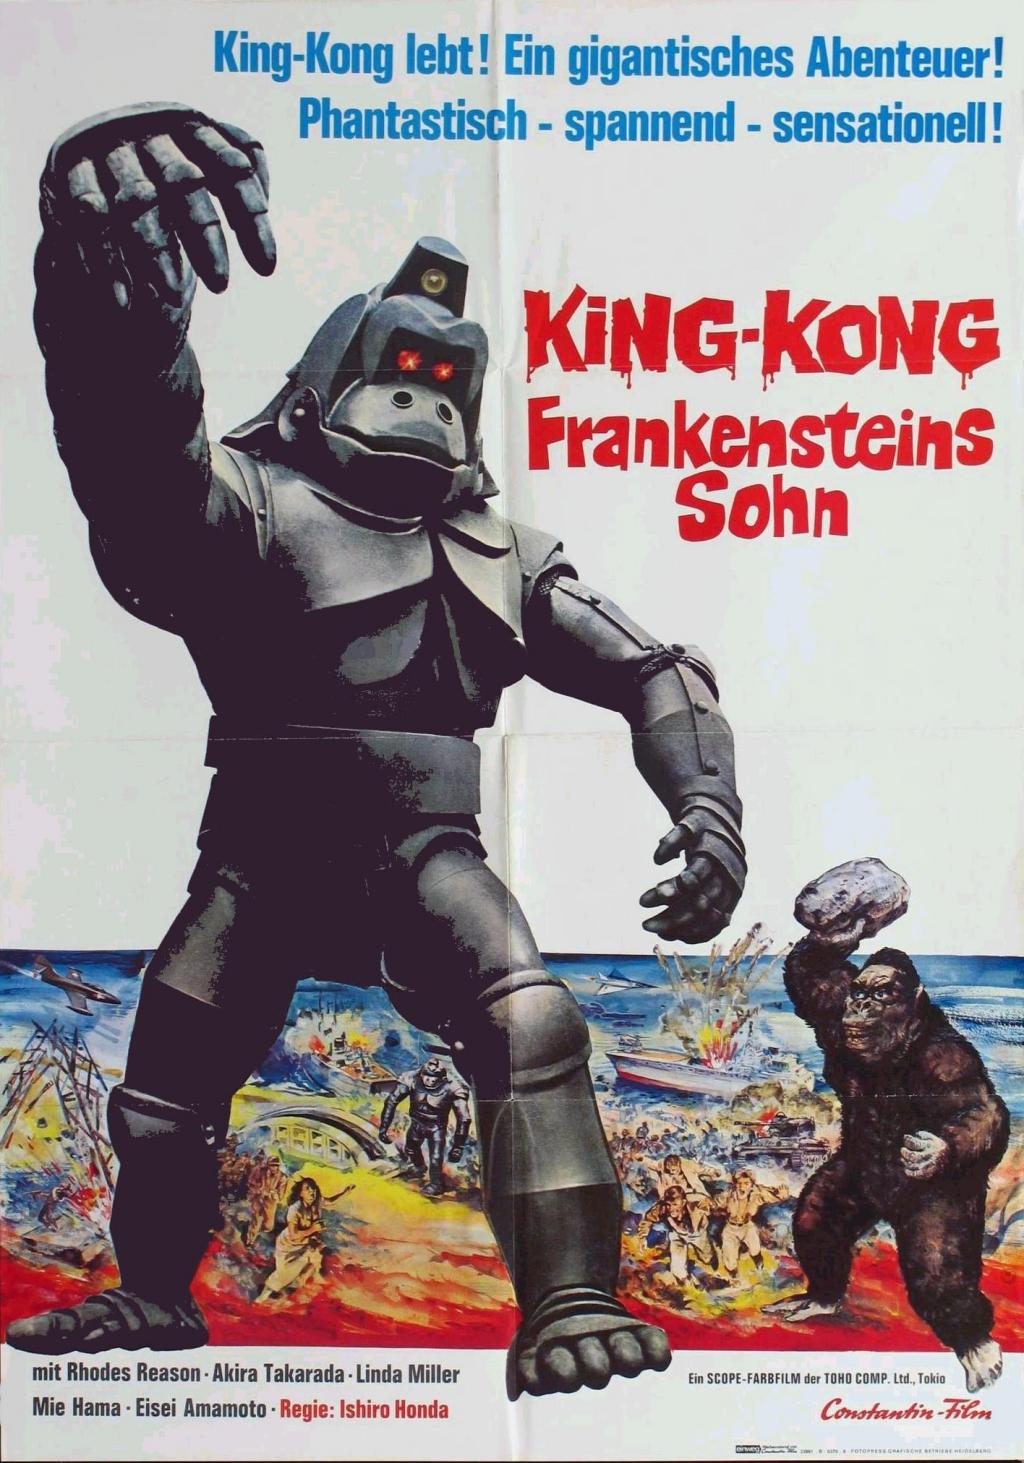 0german_king_kong_escapes-64eac7